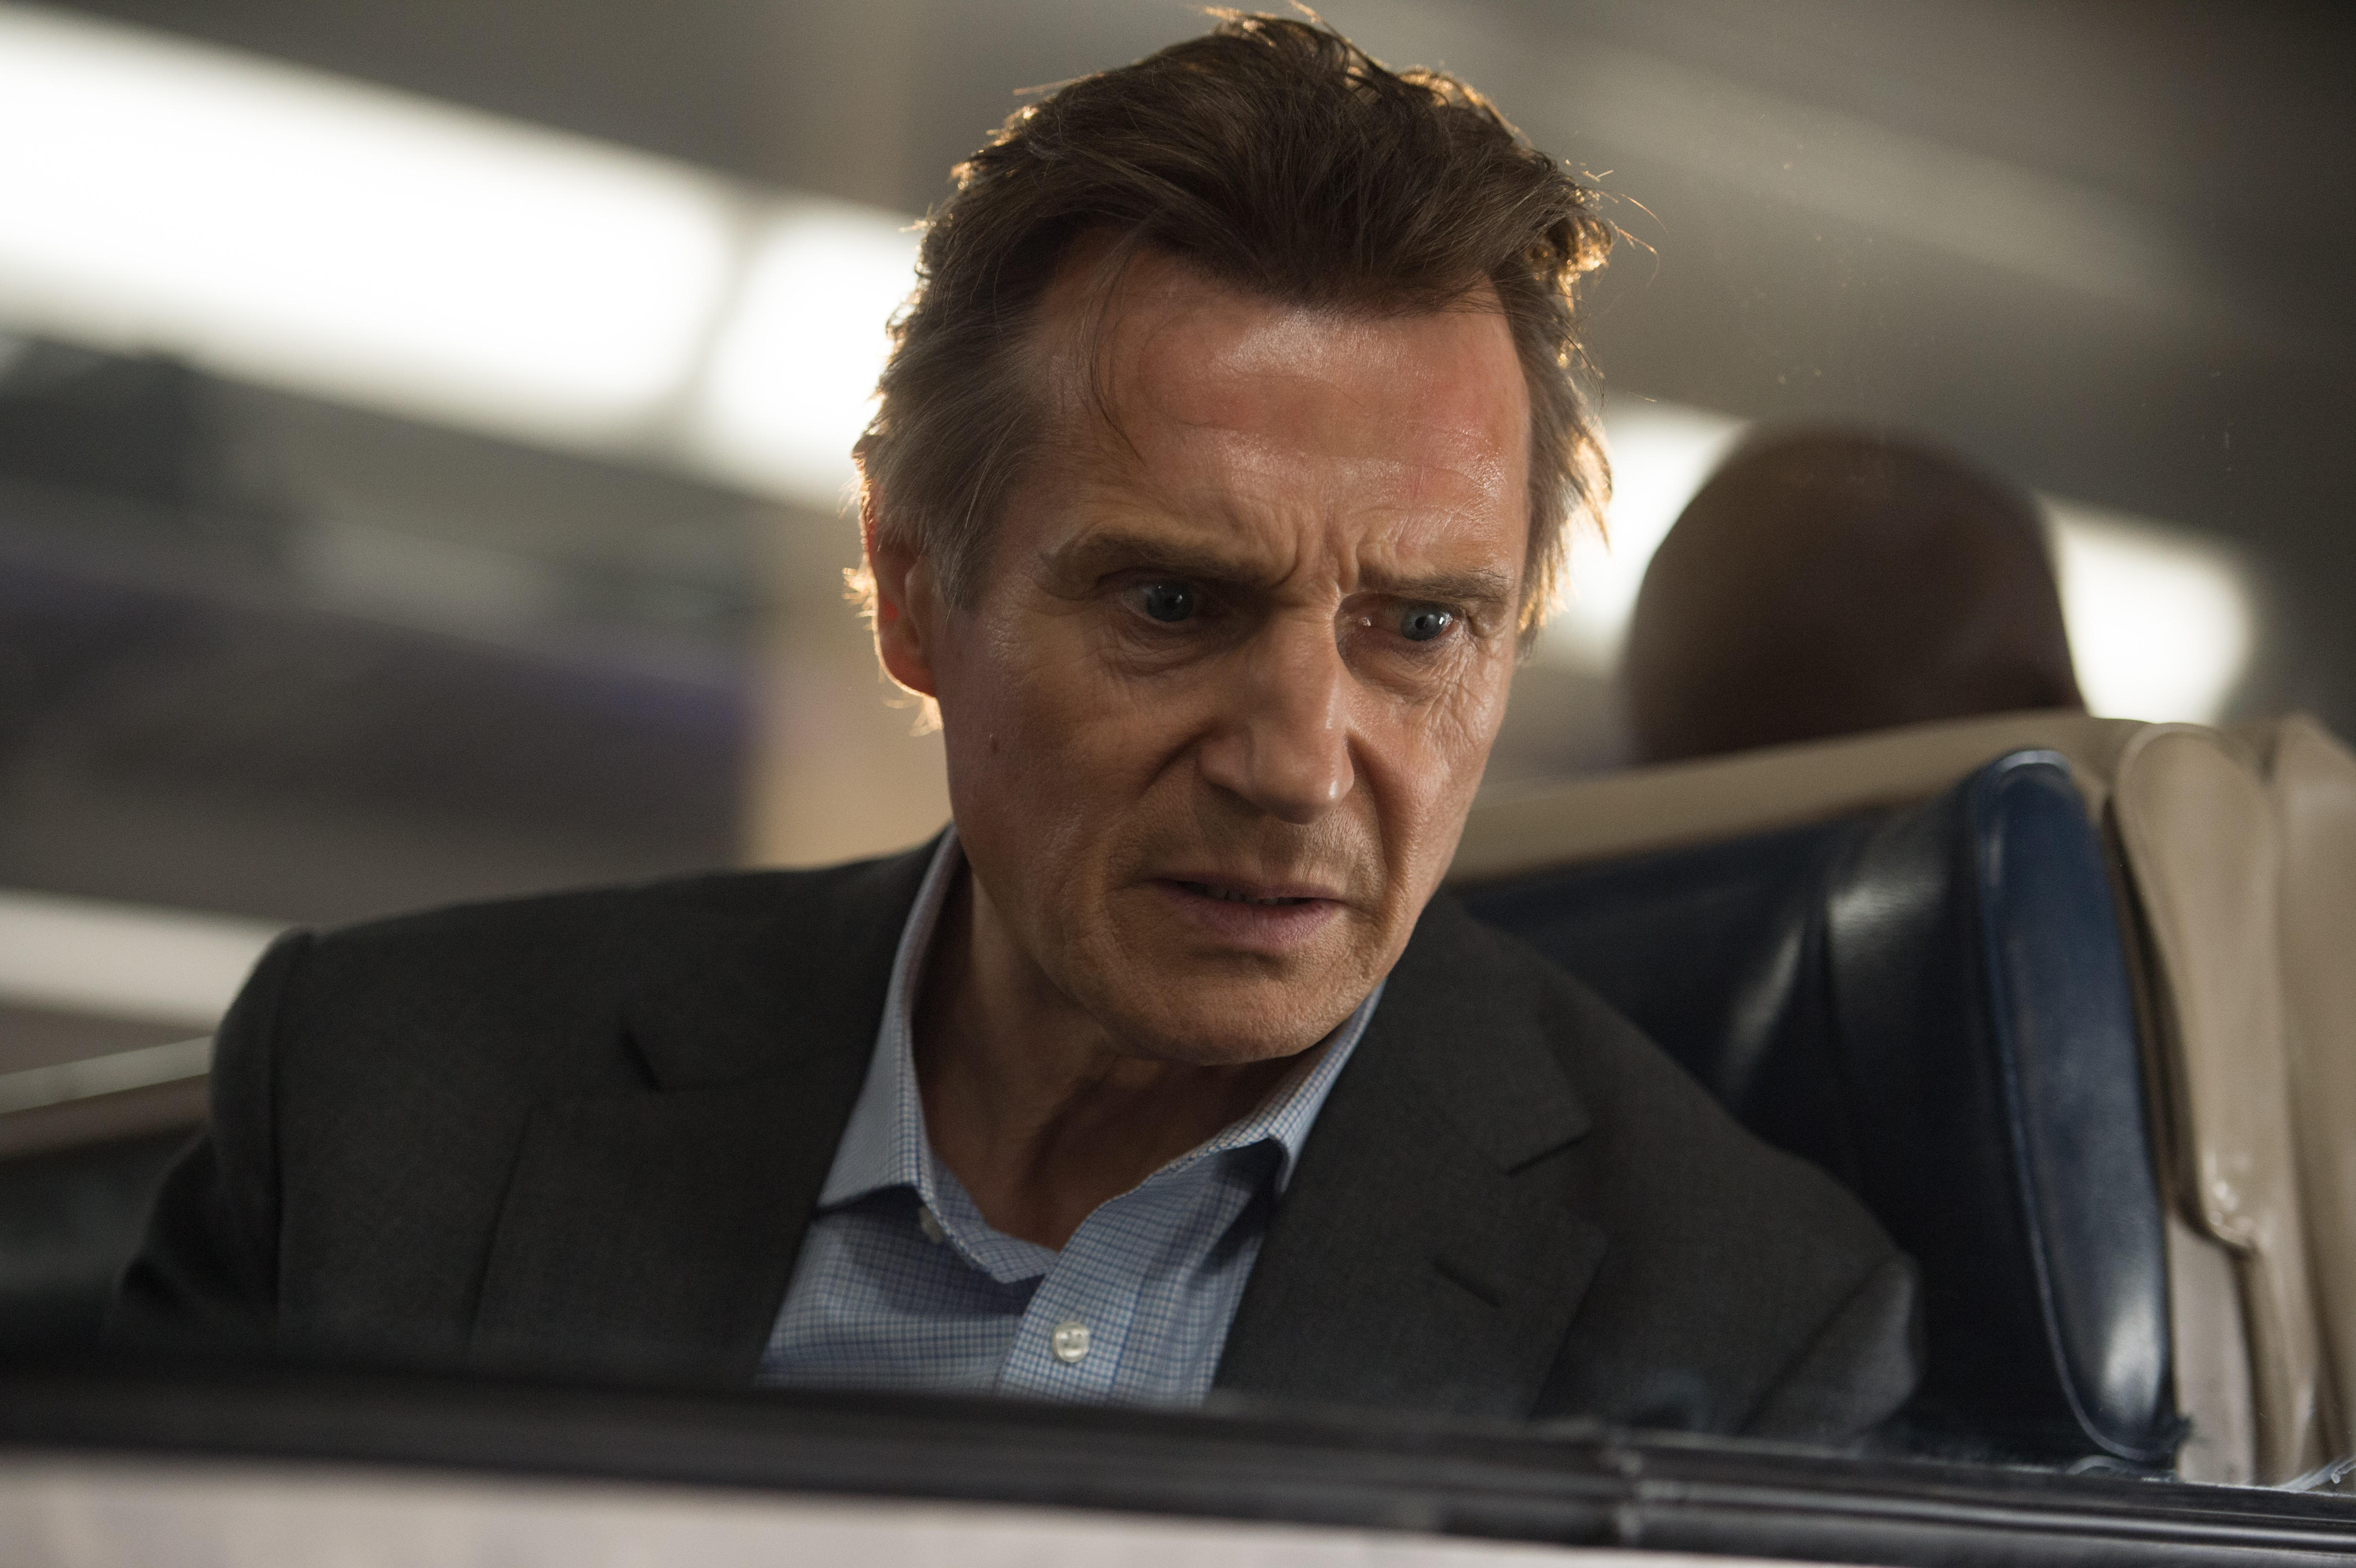 37. The Commuter